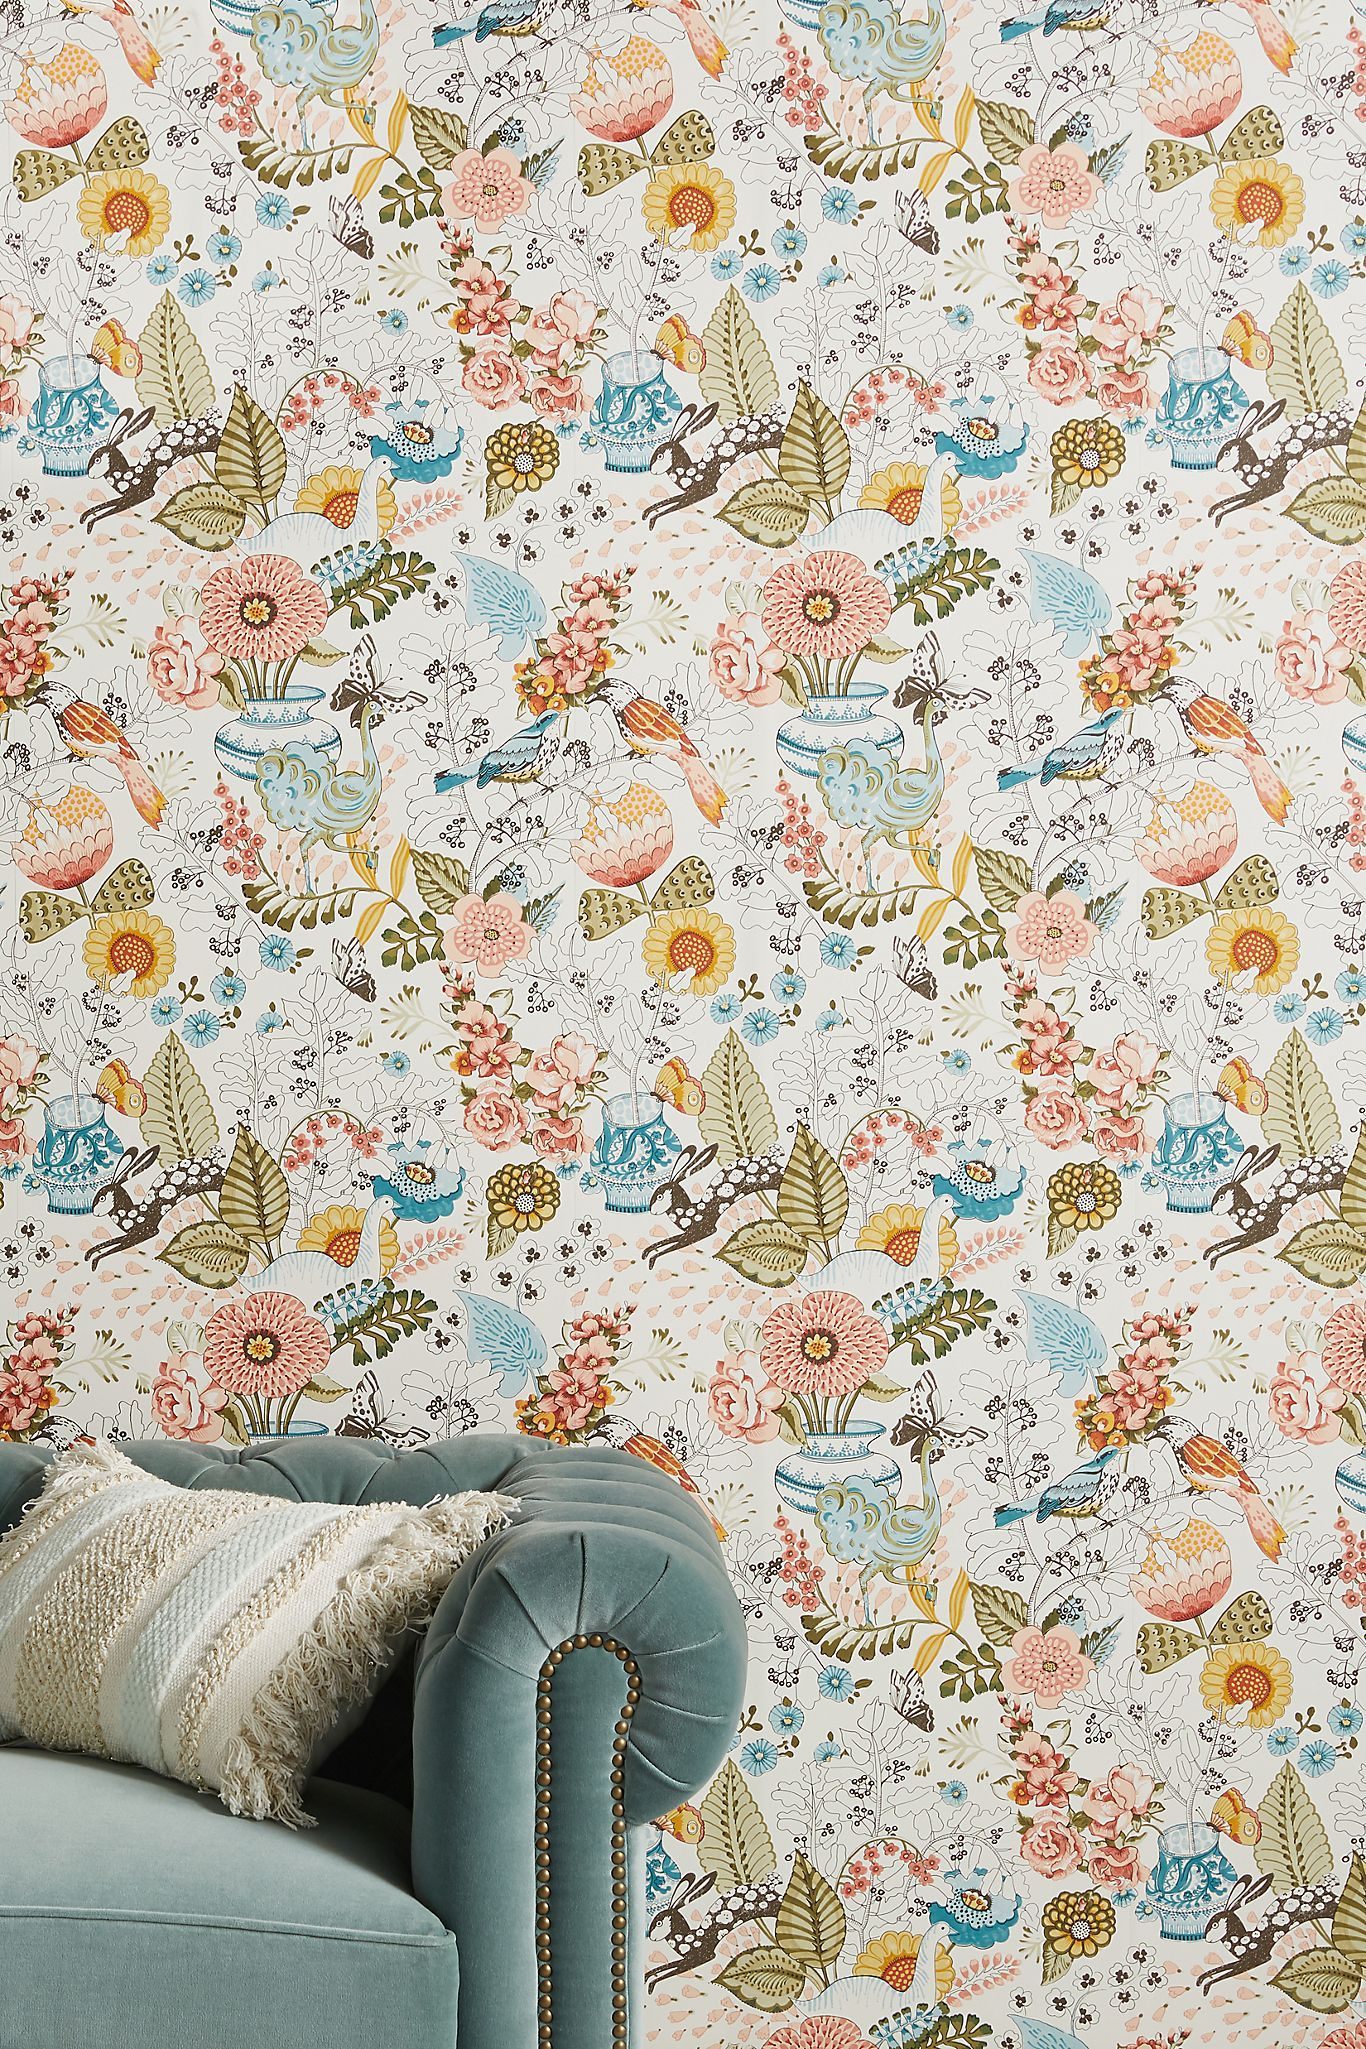 Whimsy Fauna Wallpaper Anthropologie In 2020 Unique Wallpaper Whimsy Wallpaper